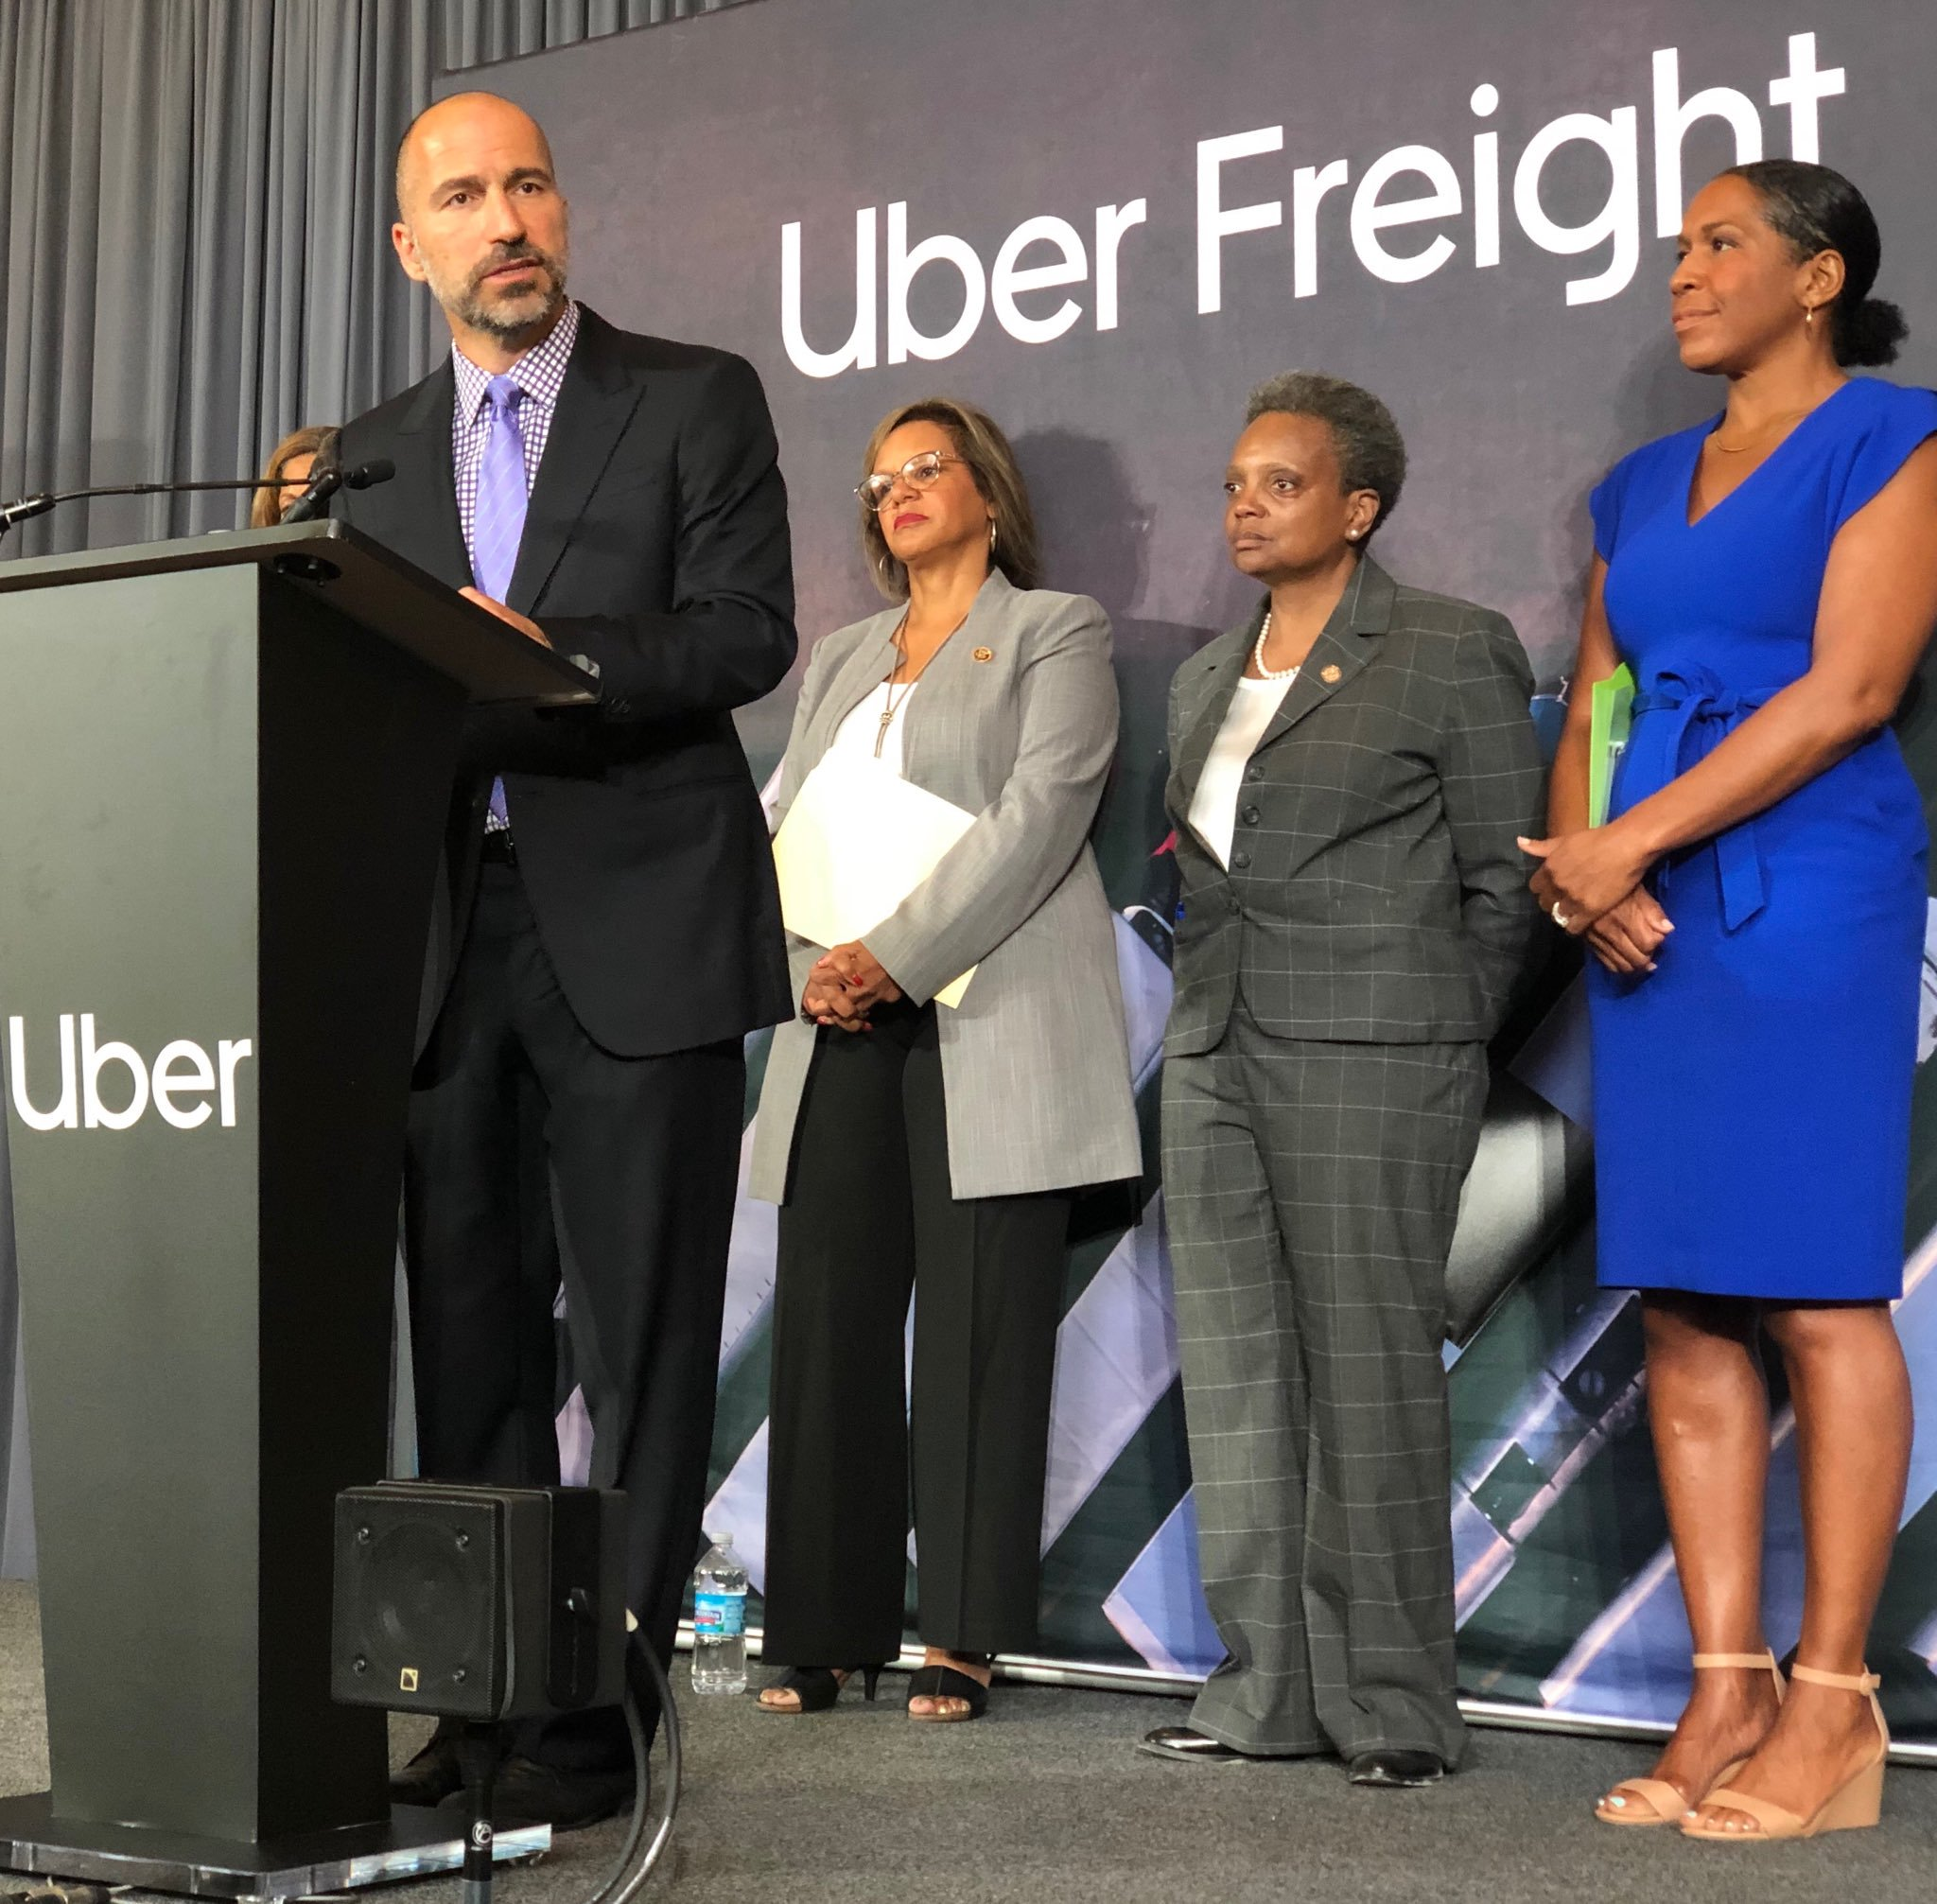 Uber CEO Dara Khosrowshahi, speaking at the Old Main Post Office.